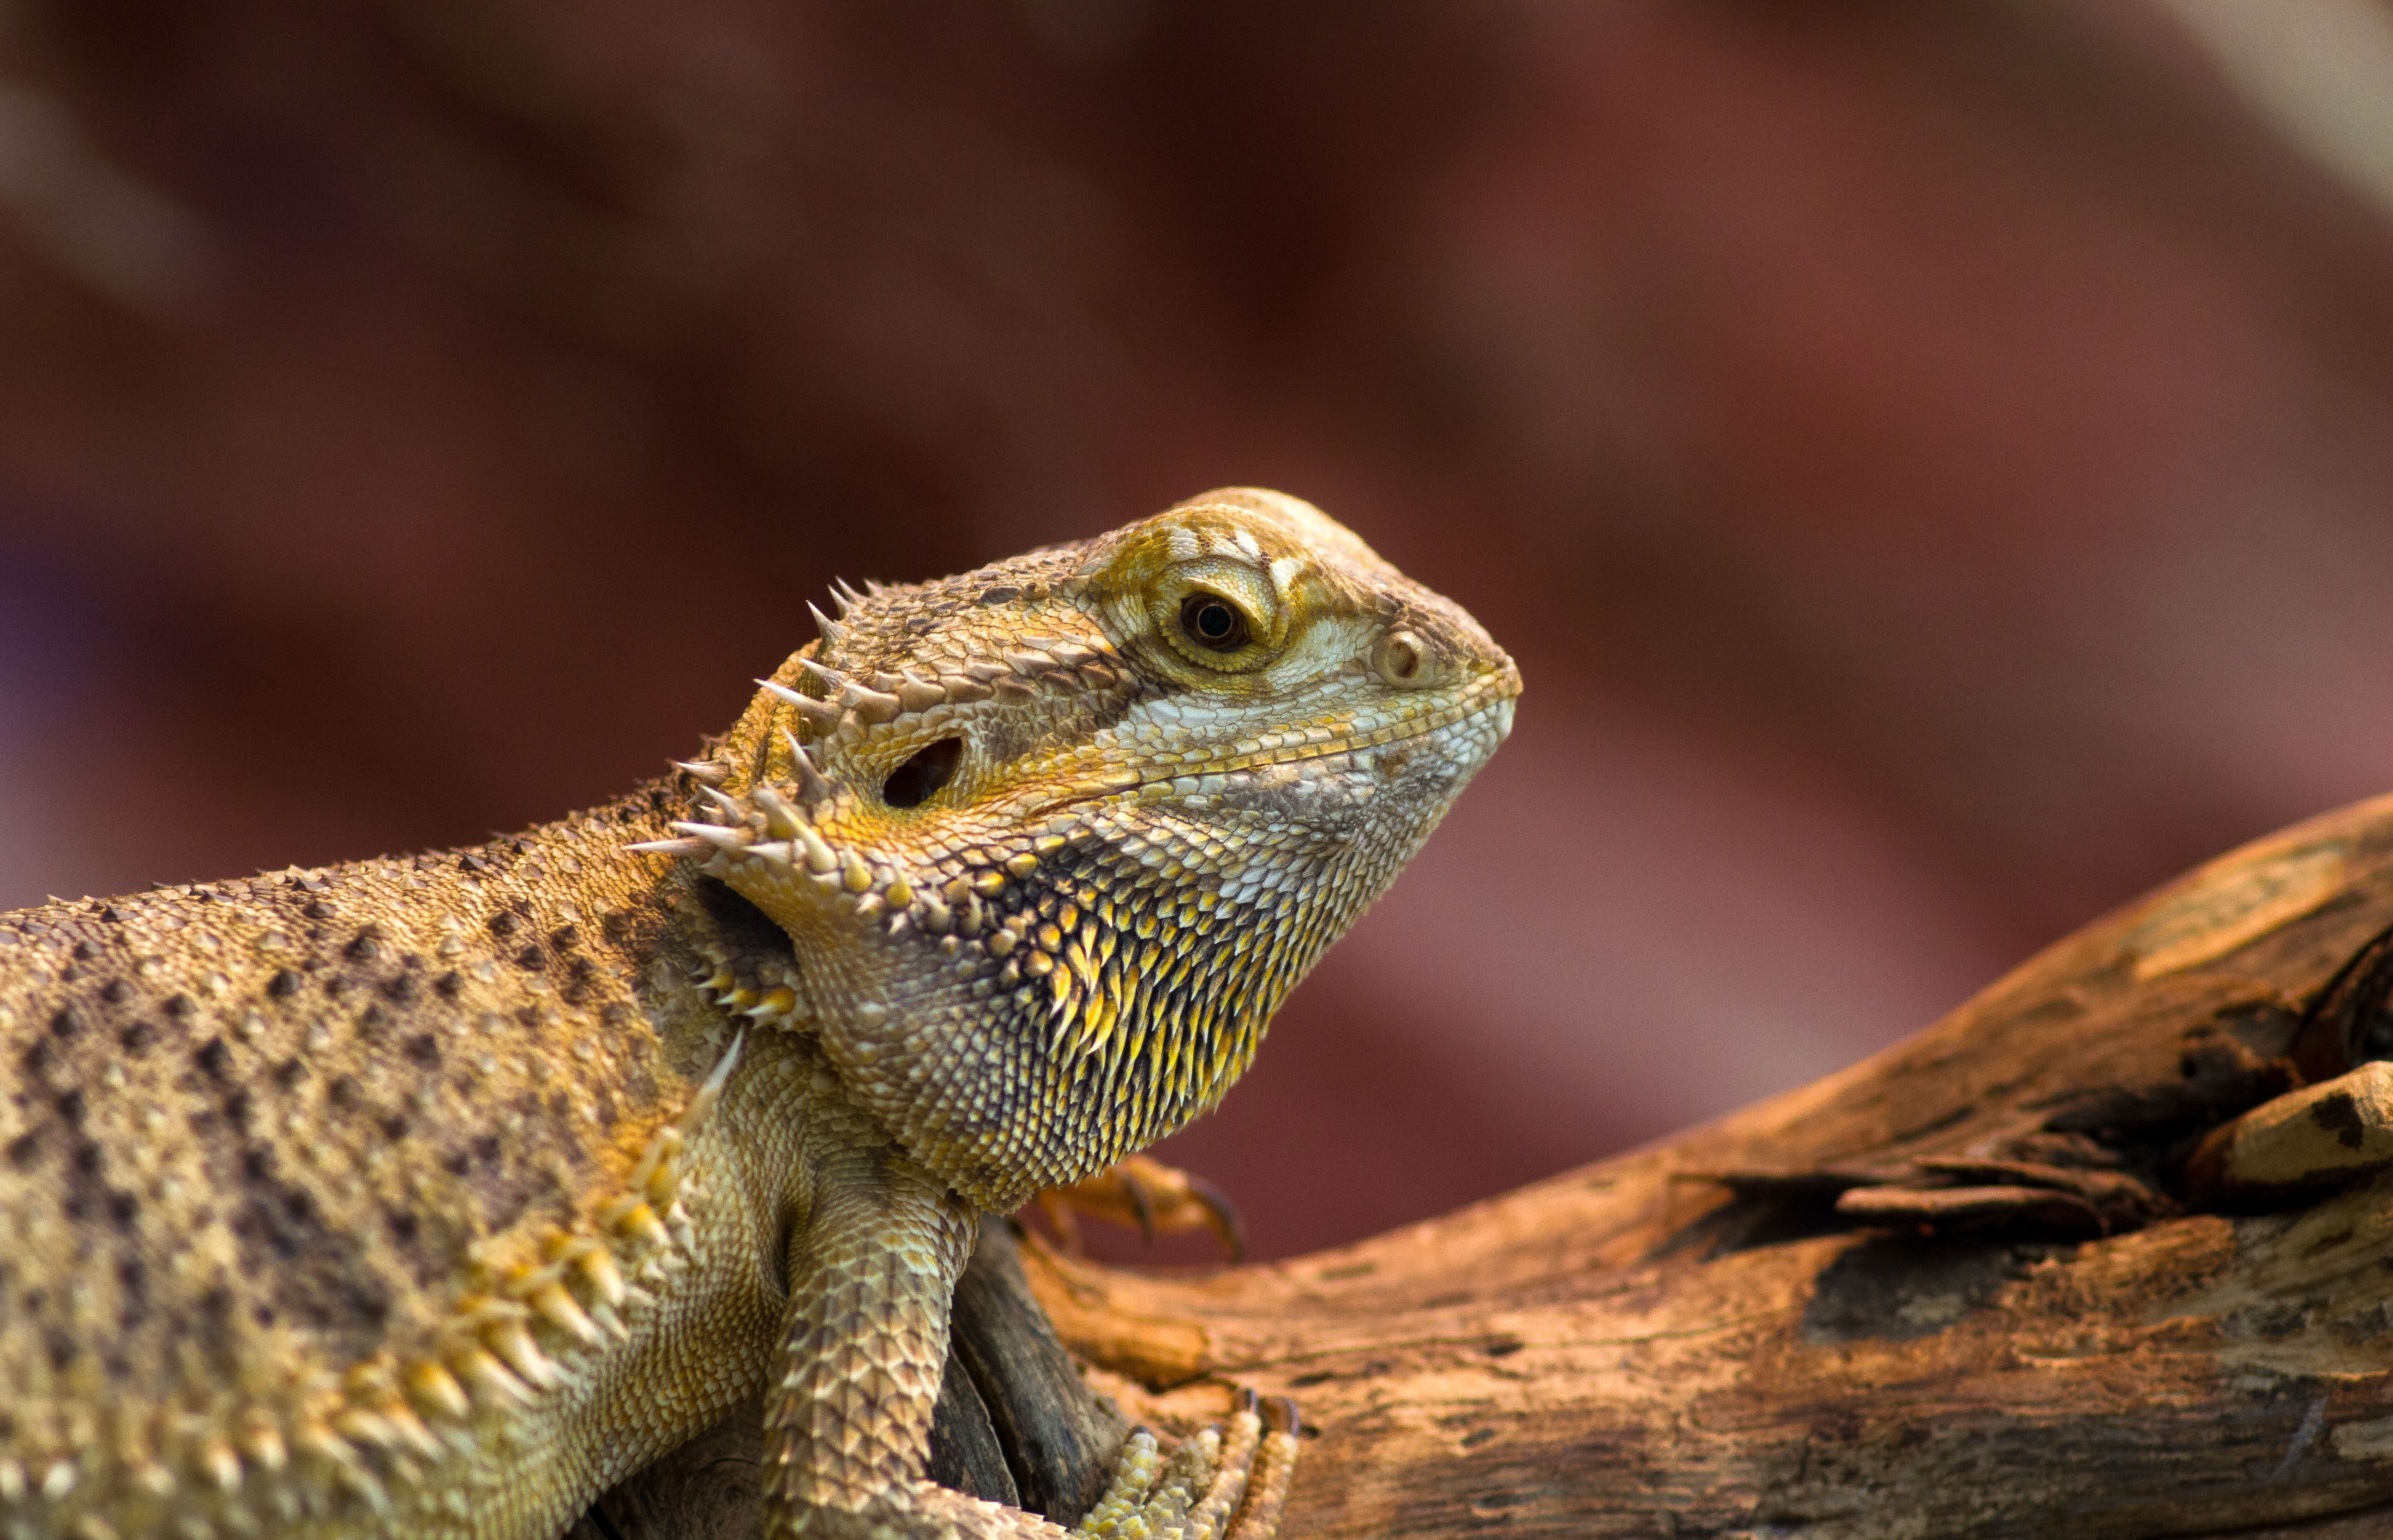 Bearded dragon wallpapers backgrounds bearded dragon hd wallpaper voltagebd Choice Image